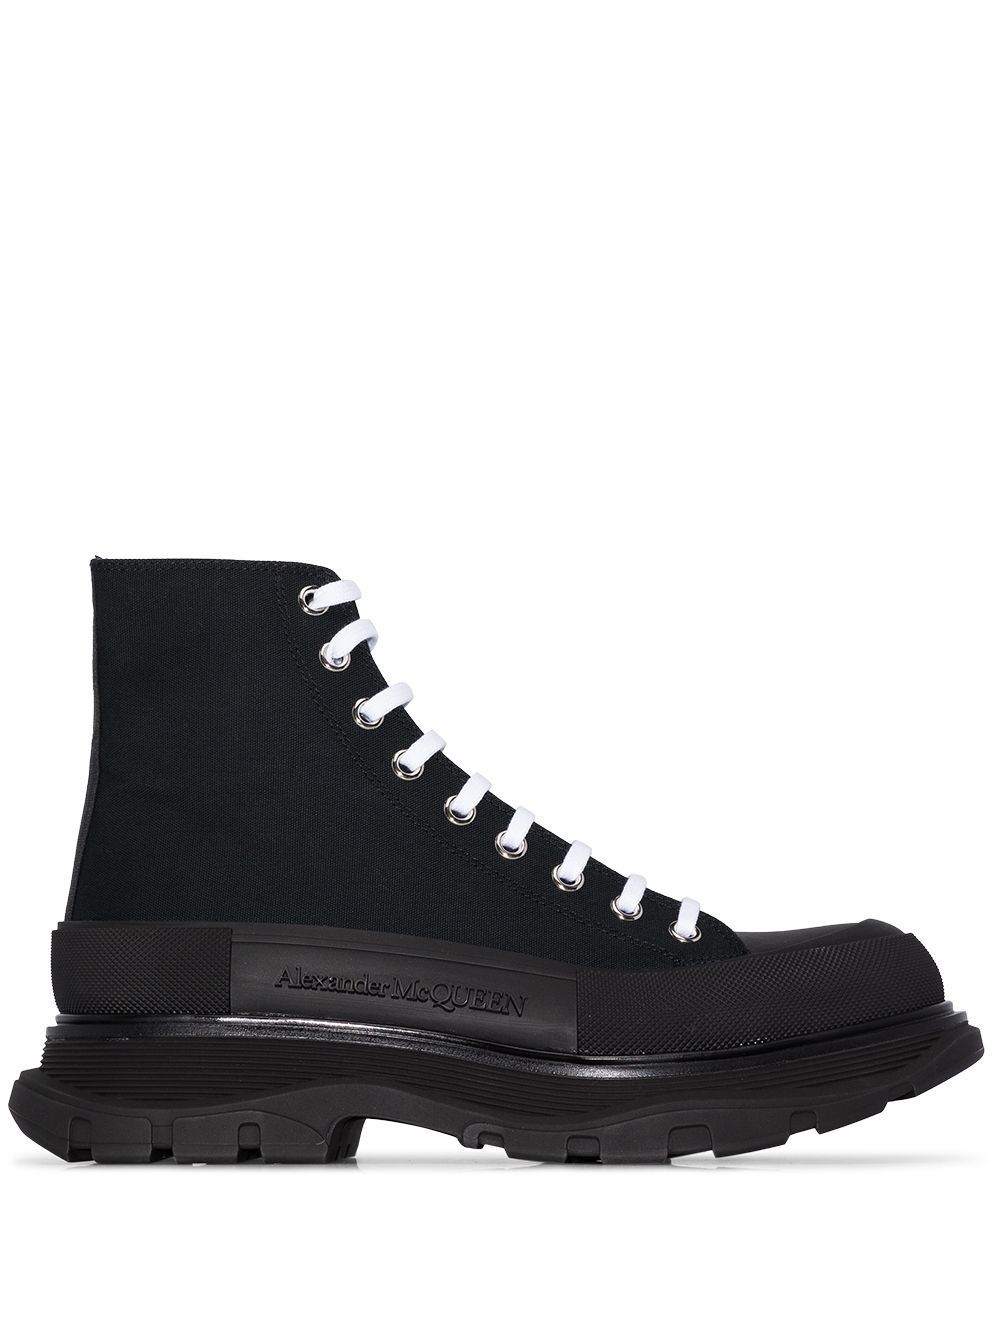 ALEXANDER MCQUEEN Lace-up Combat Boots Black - Maison De Fashion